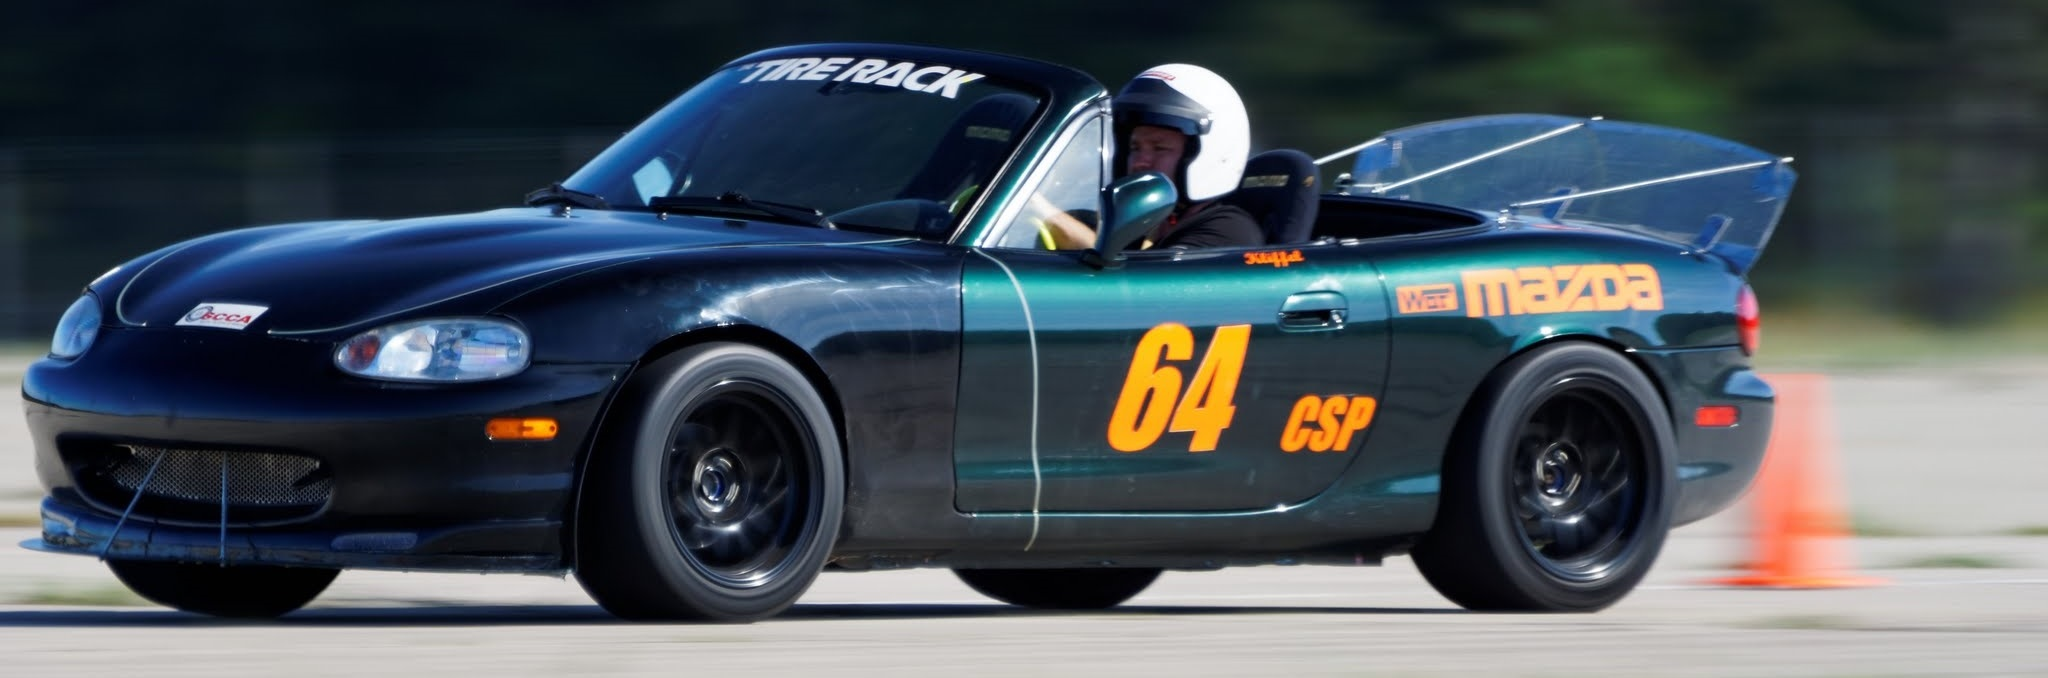 Drive Into Spring Autocross